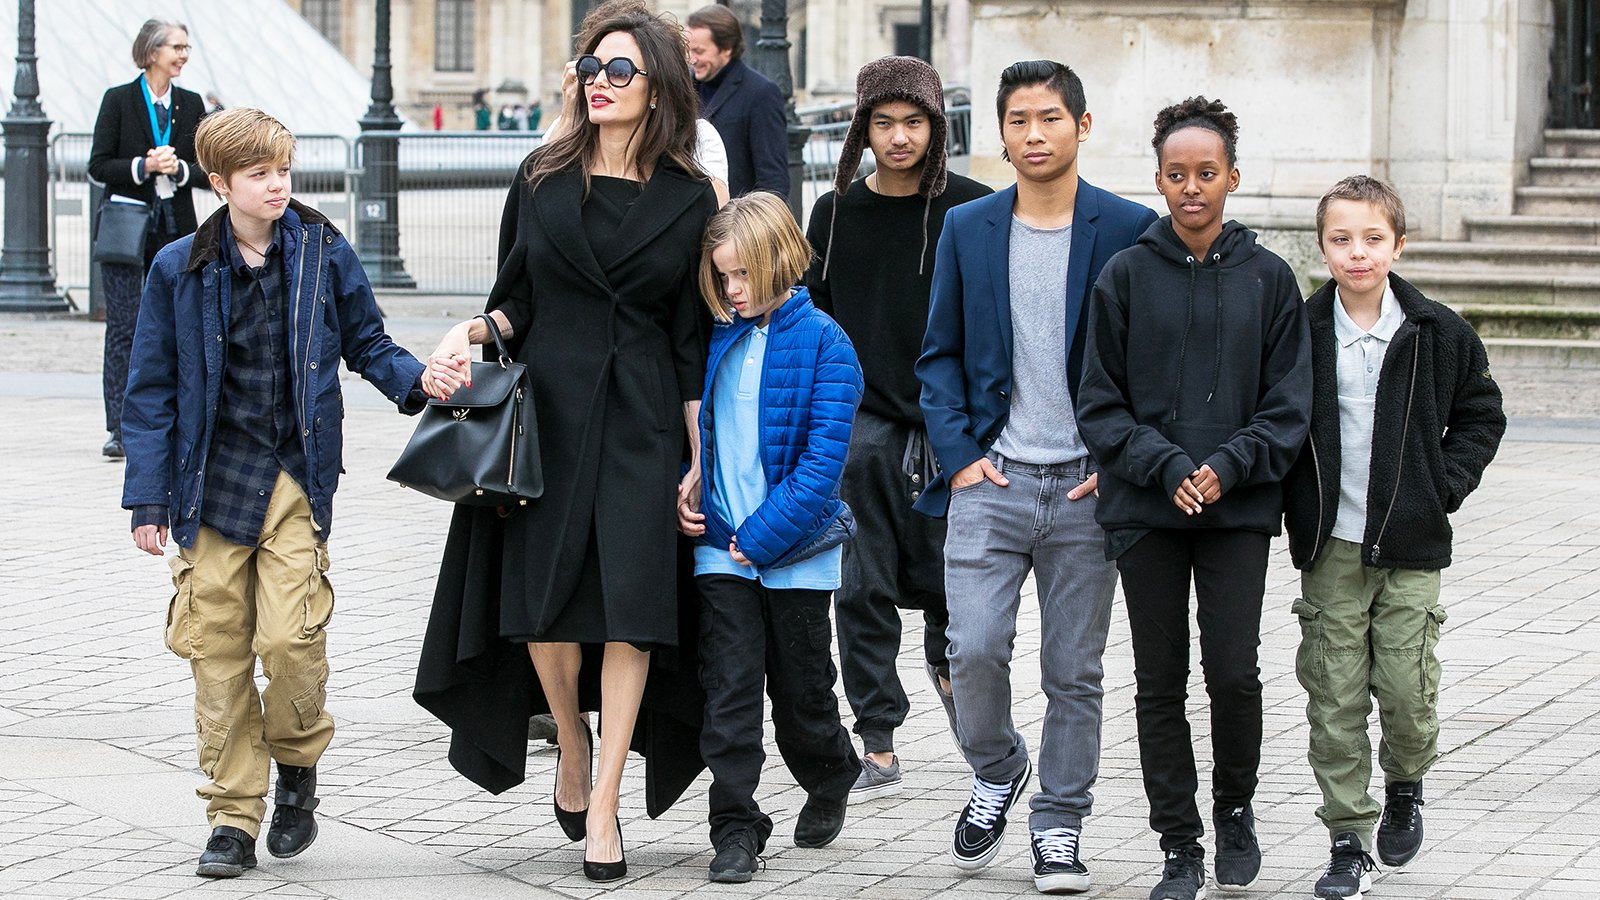 Brad Pitt and Angelina Jolie ended their two-year marriage in 2016, but they had been together for more than a decade in total. They share 6 kids together and four years after the former spouses separated, they are still battling in court.